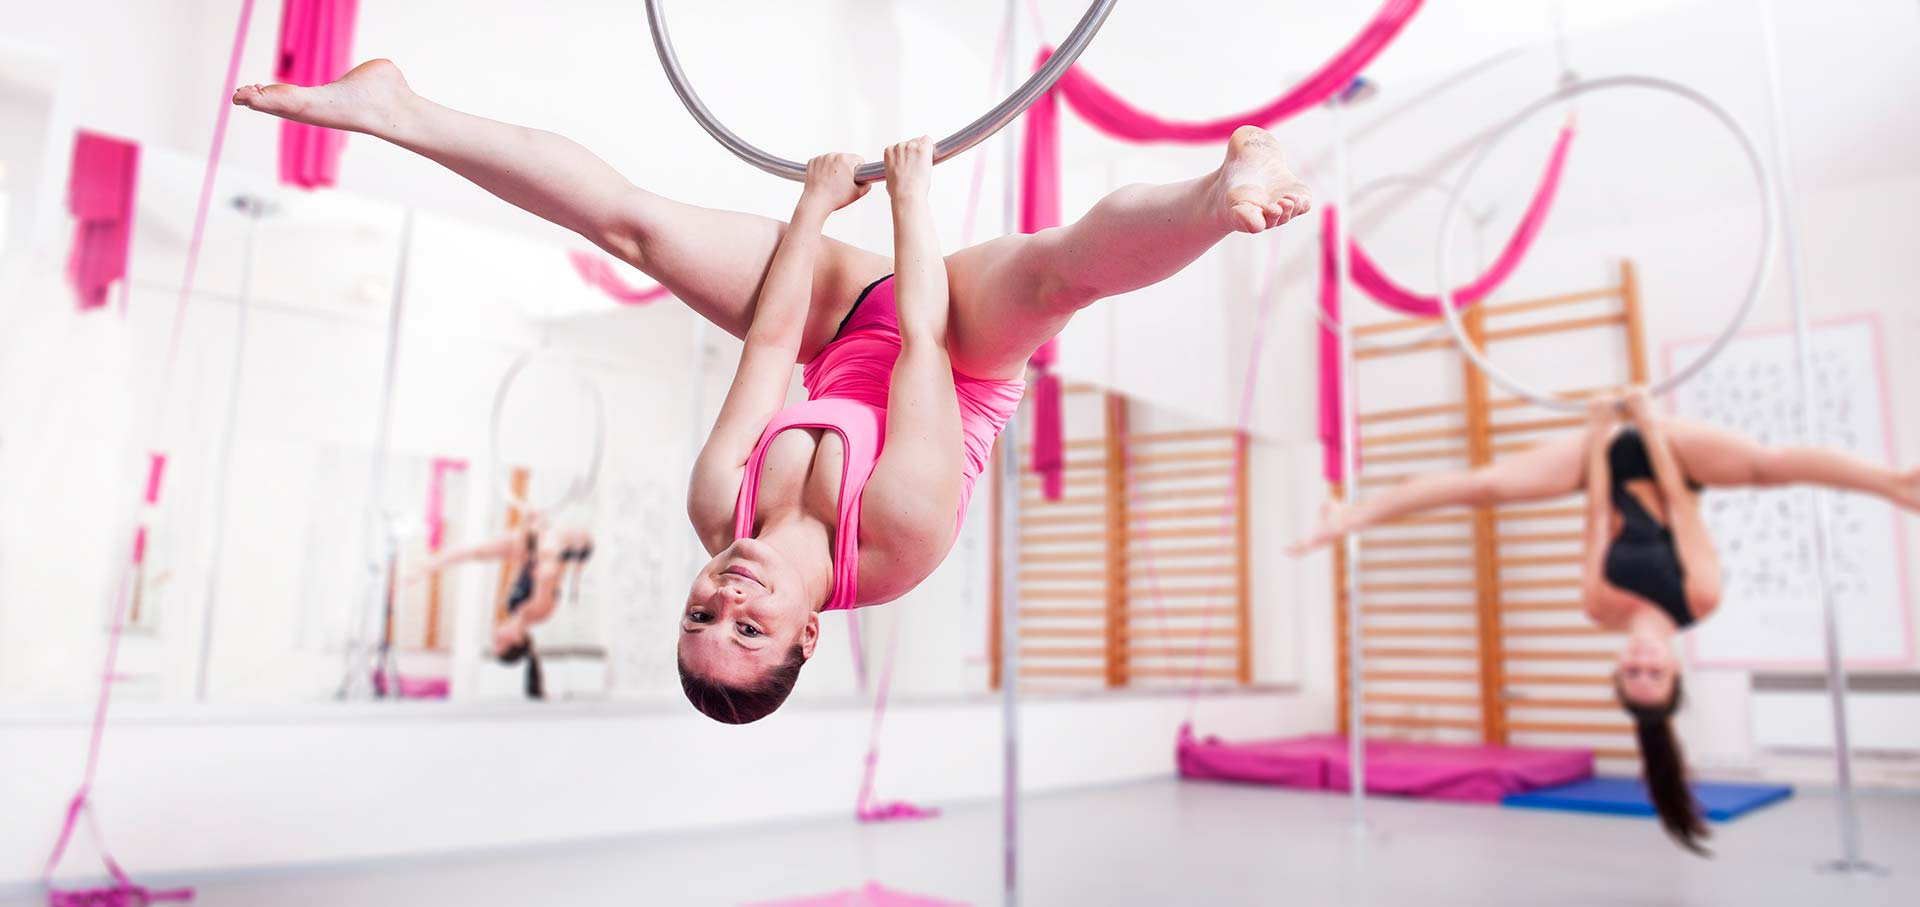 introduction image of Moschna pole-dance center